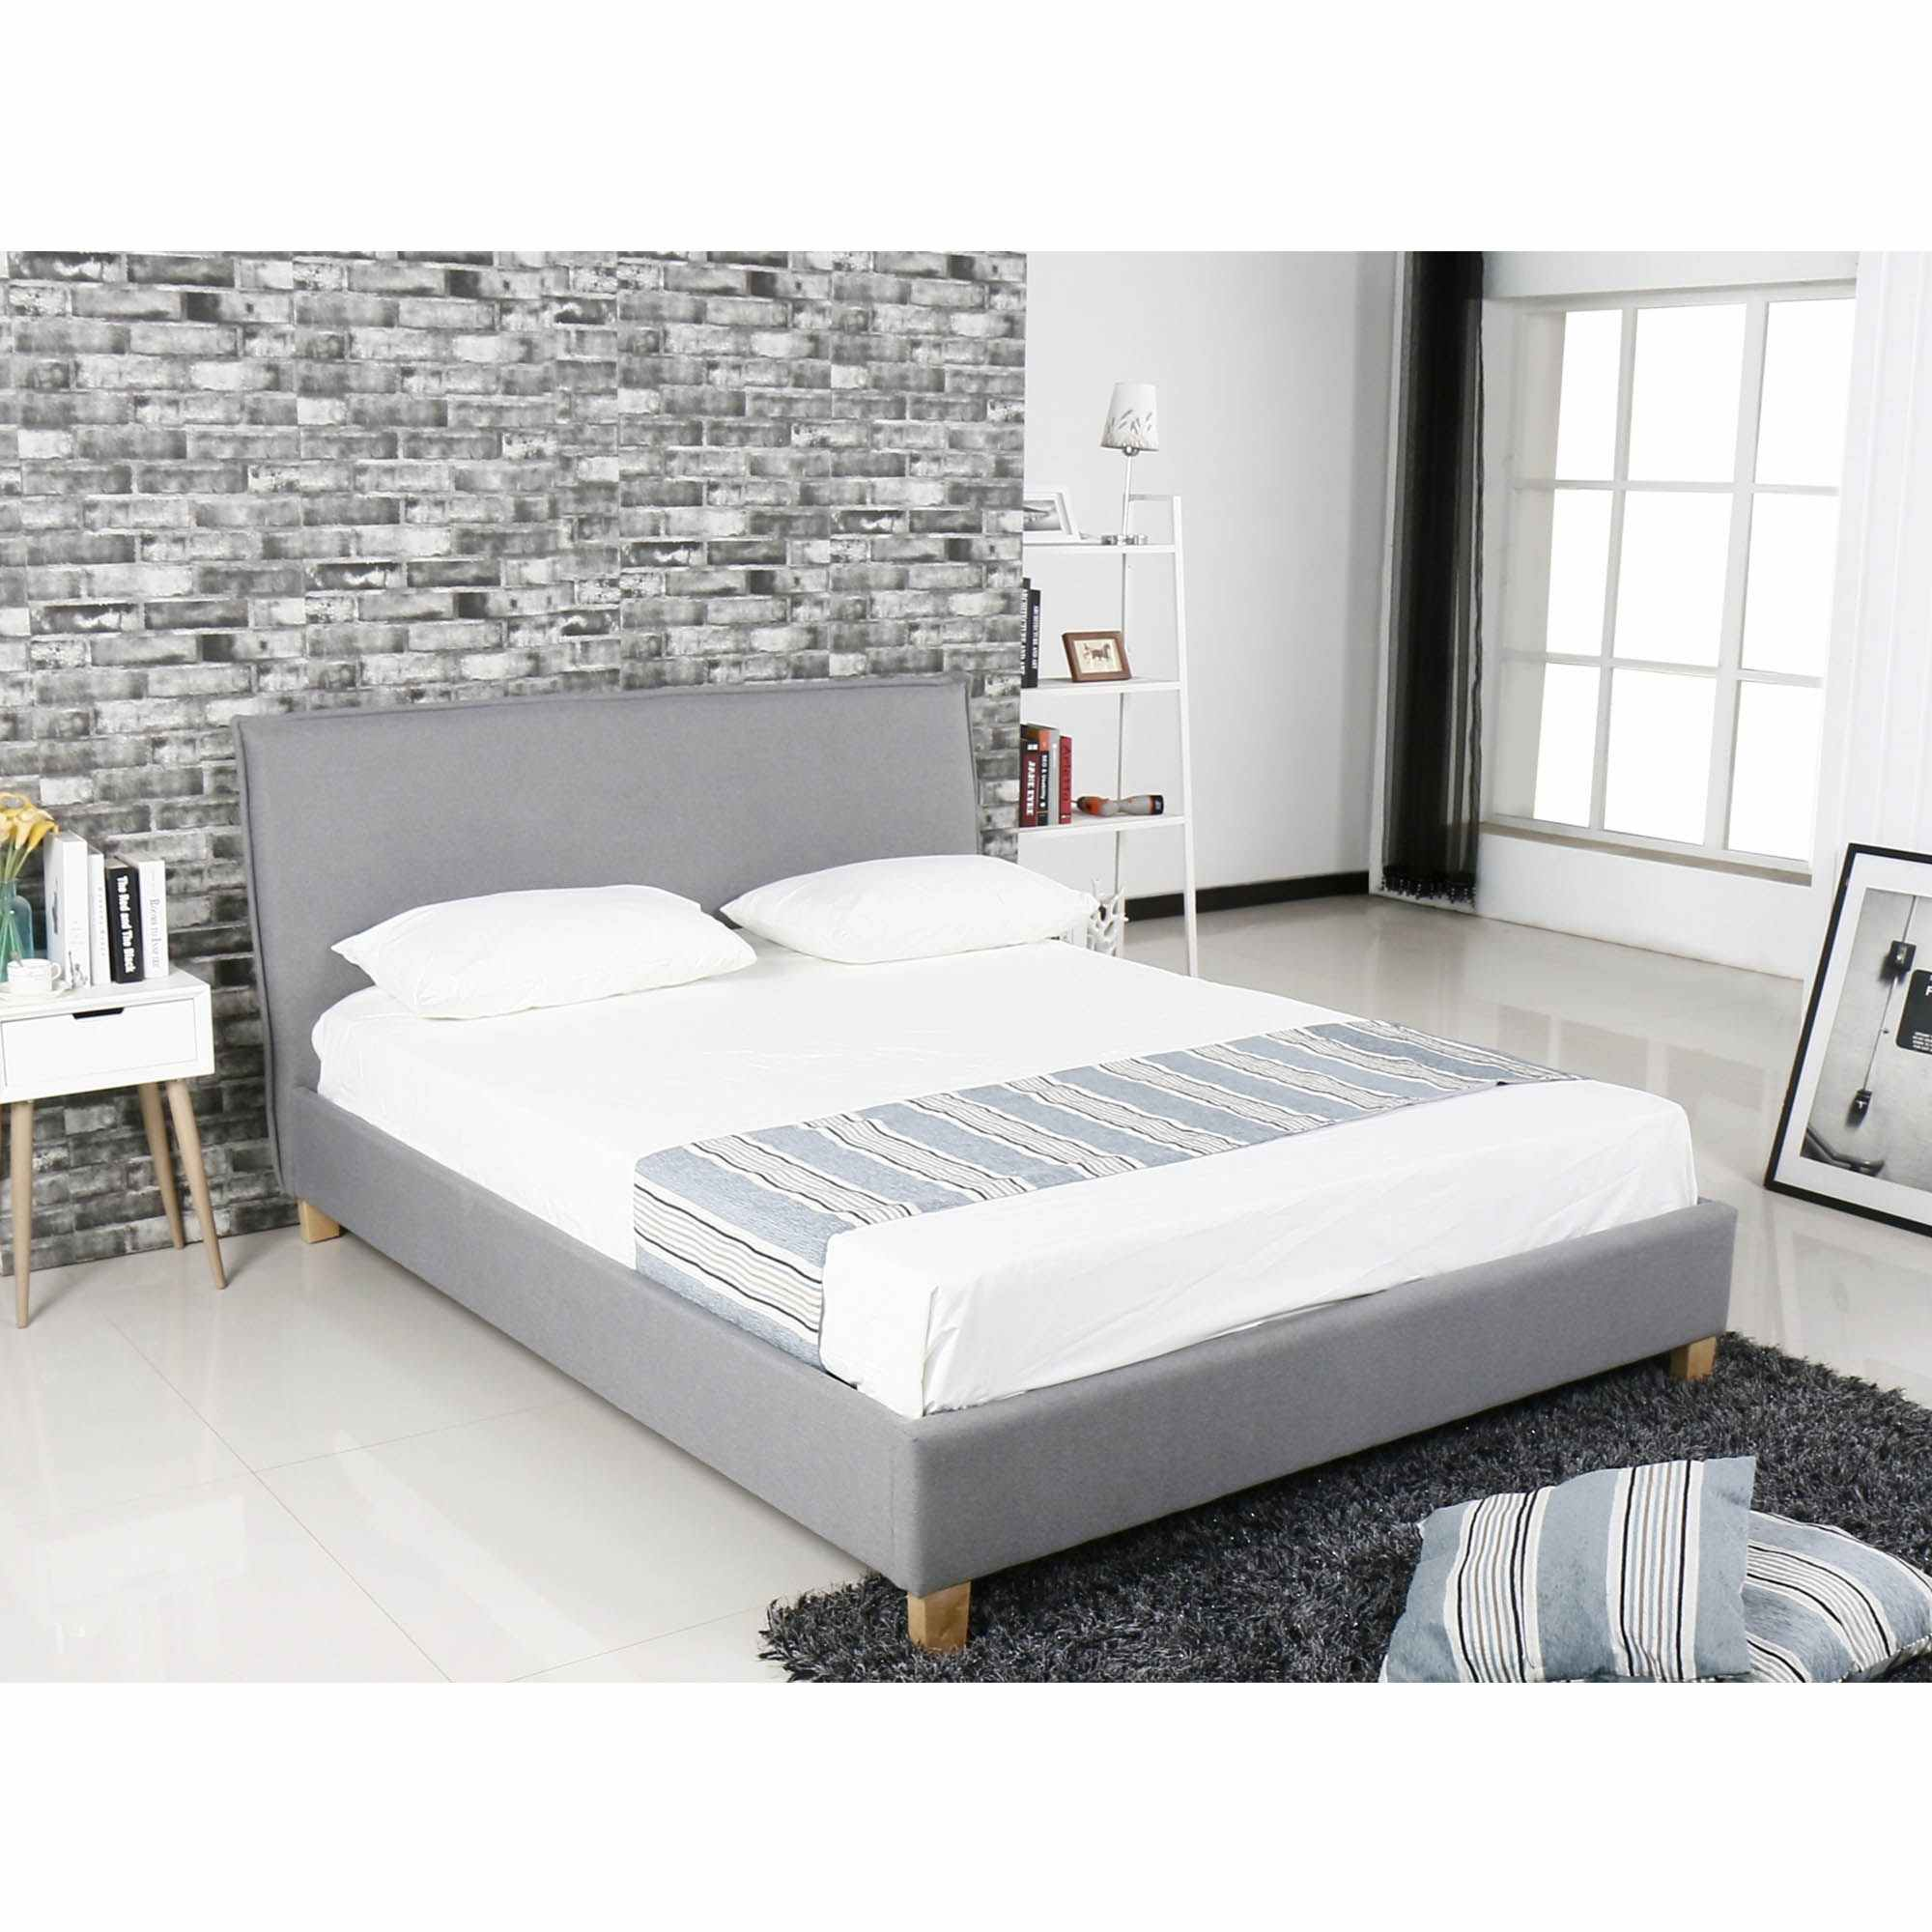 Deco In Paris 0 Lit Scandinave En Tissu Gris Brook 140x190 Cm